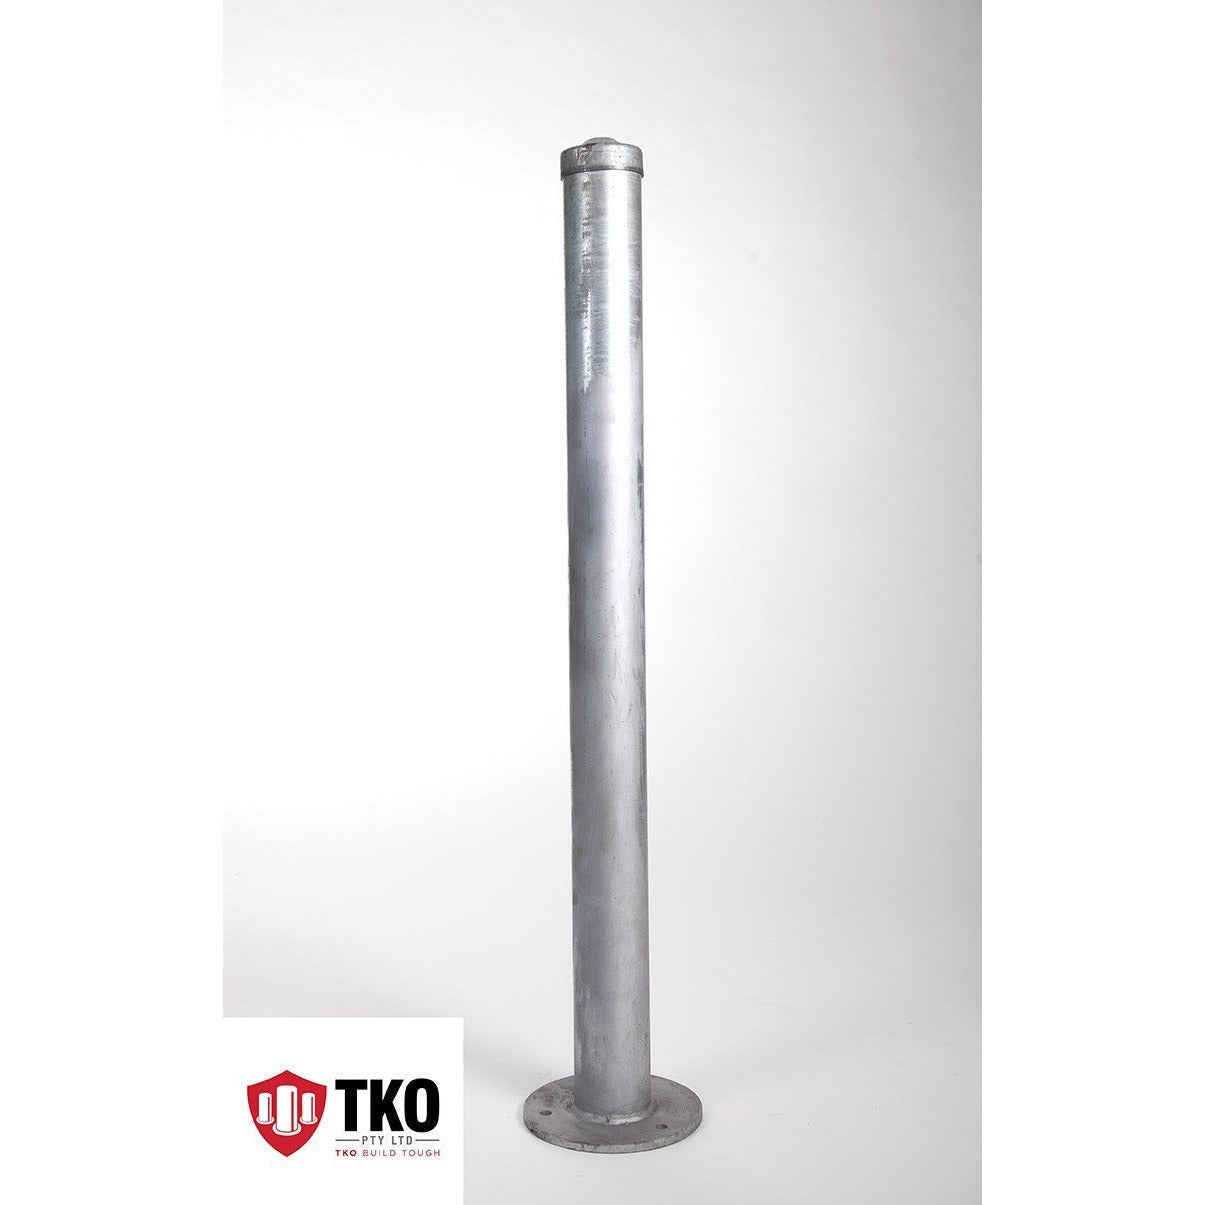 90 OD/MM Surface Mounted - Galvanised Bollard - Brisbane bollards